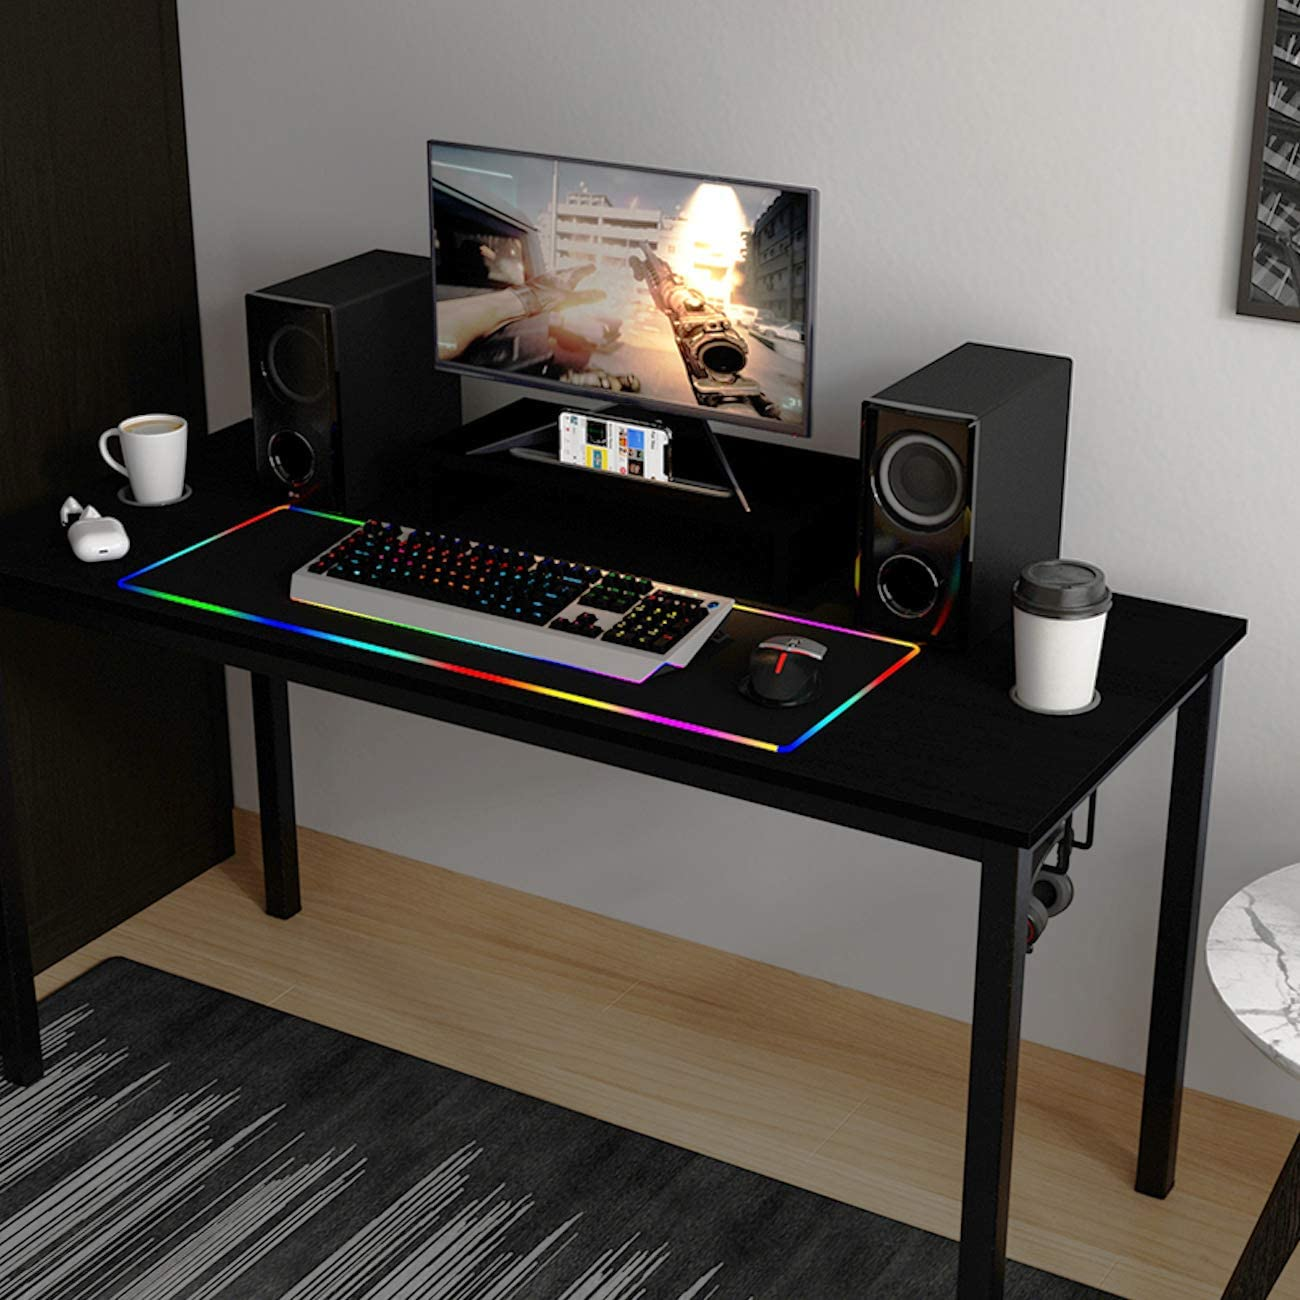 List price sogesfurniture Gaming Max 46% OFF Computer Desk Tab 54.6 inches